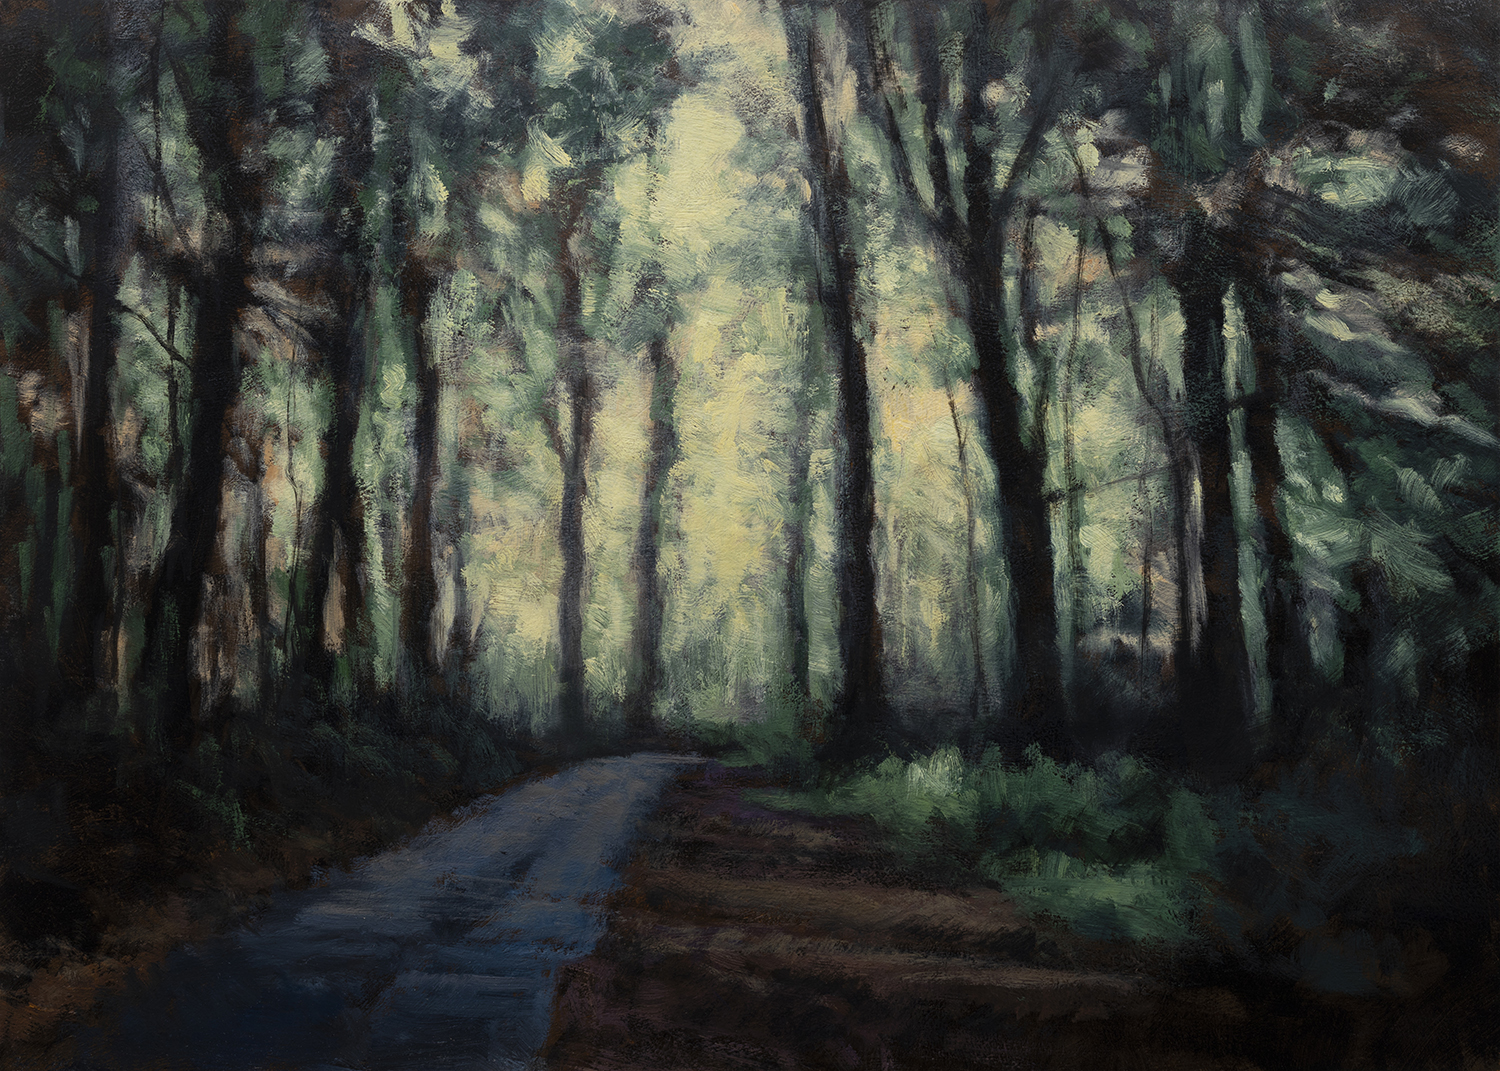 Road through the Woods by M Francis McCarthy - 5x7 Oil on Wood Panel